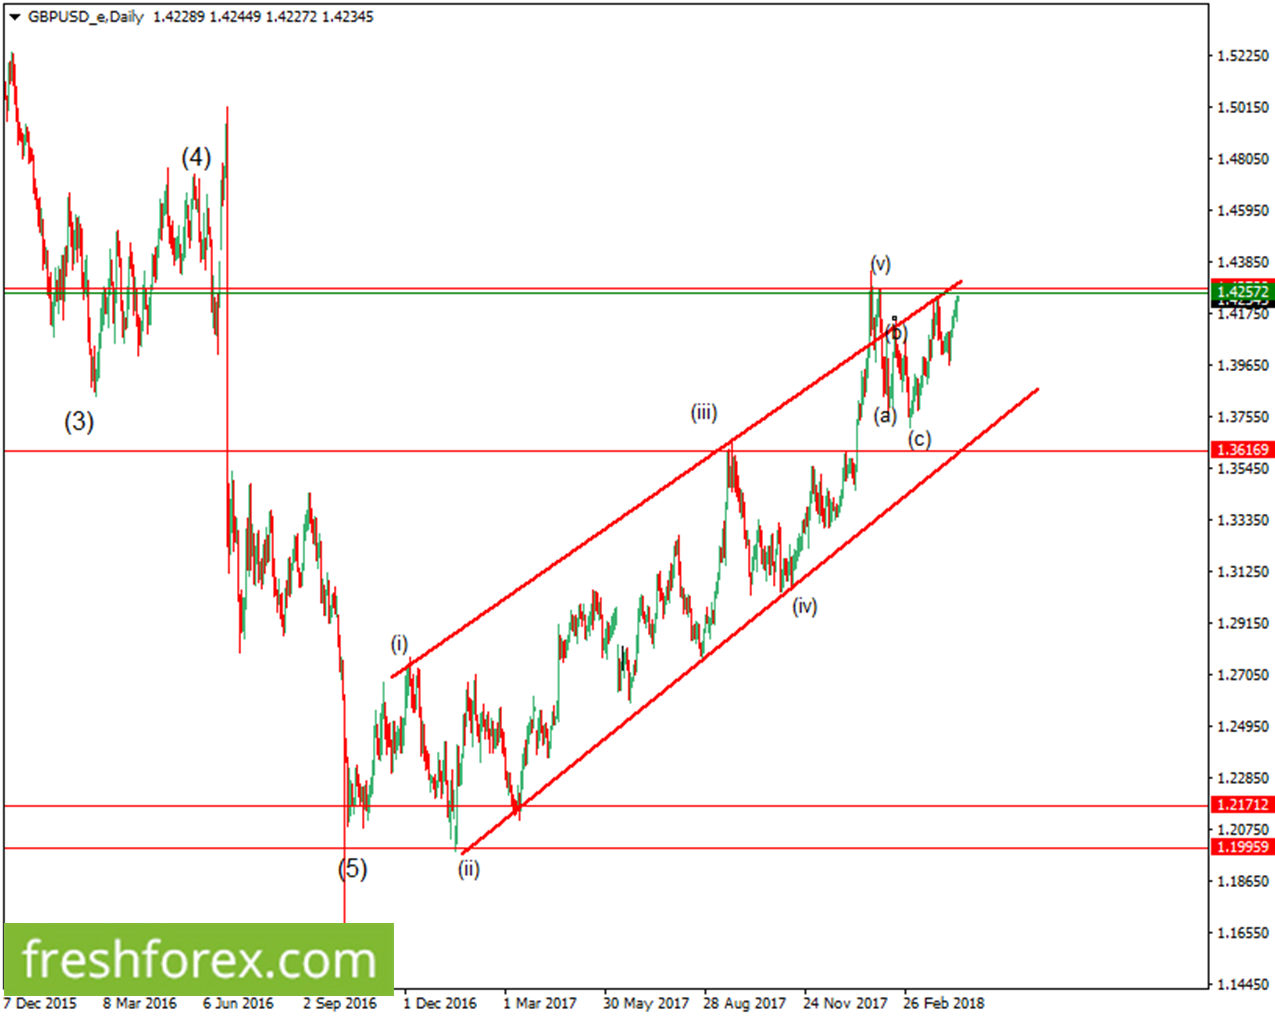 Wait for a clear rebound from 1.42572